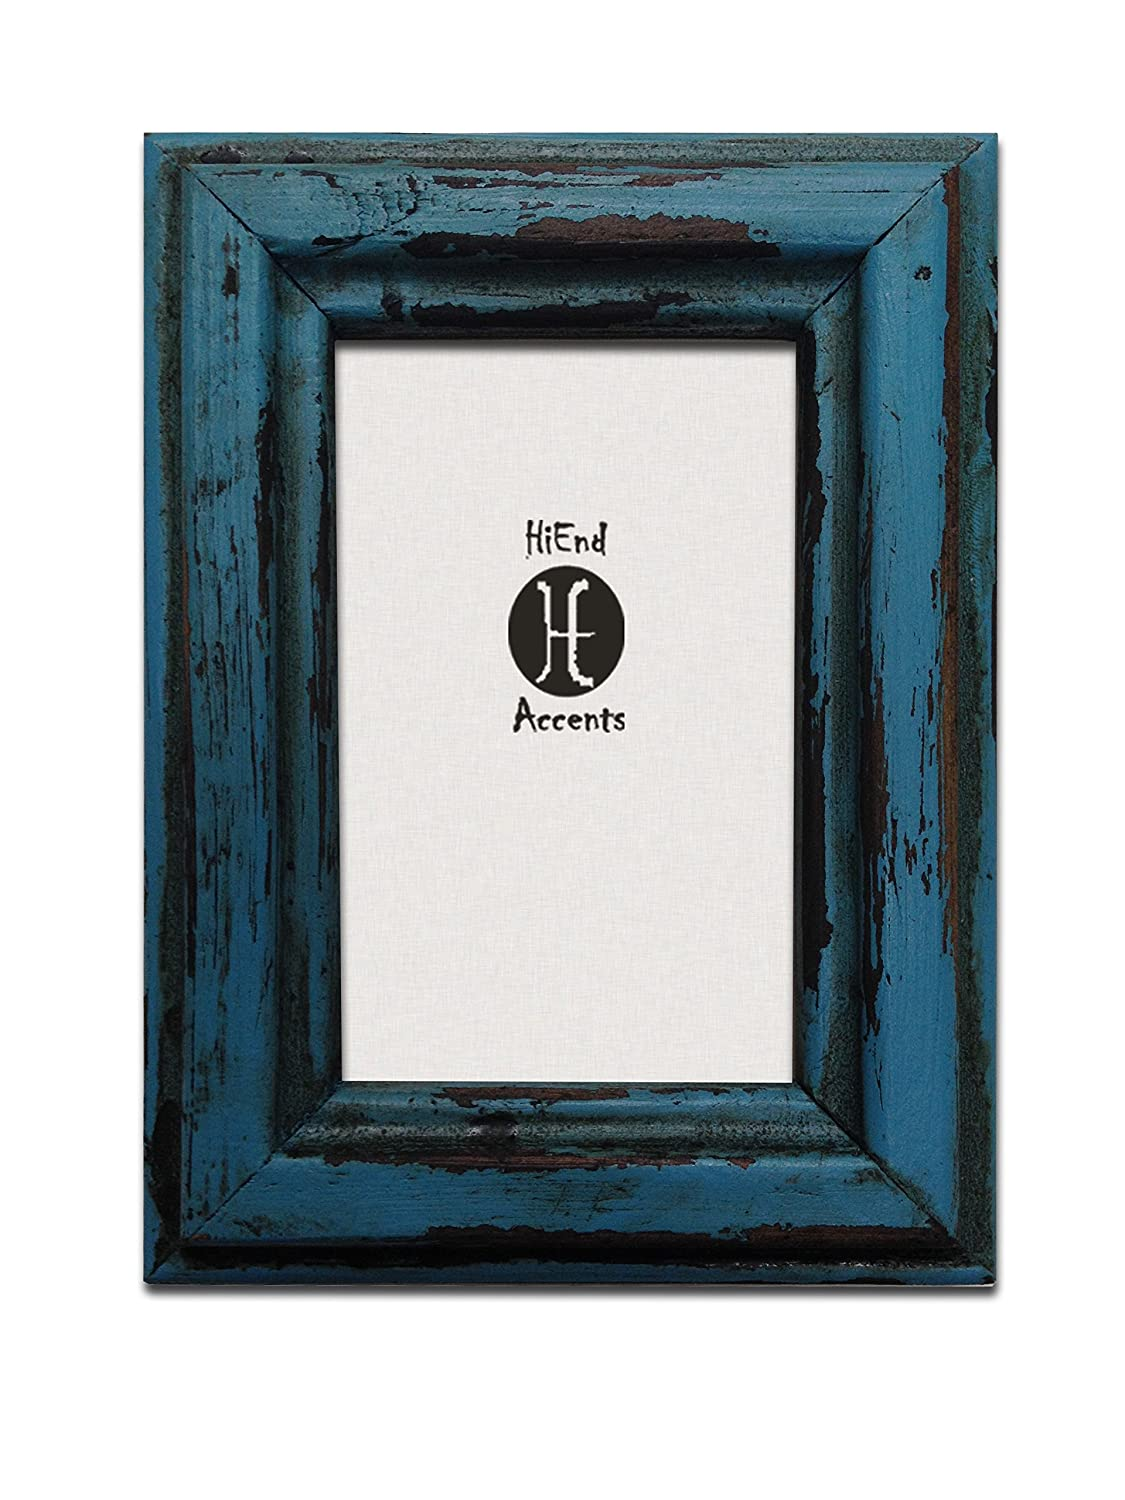 amazoncom hiend accents painted distressed wood frame 4 by 6 inch turquoise - Distressed Wood Frames